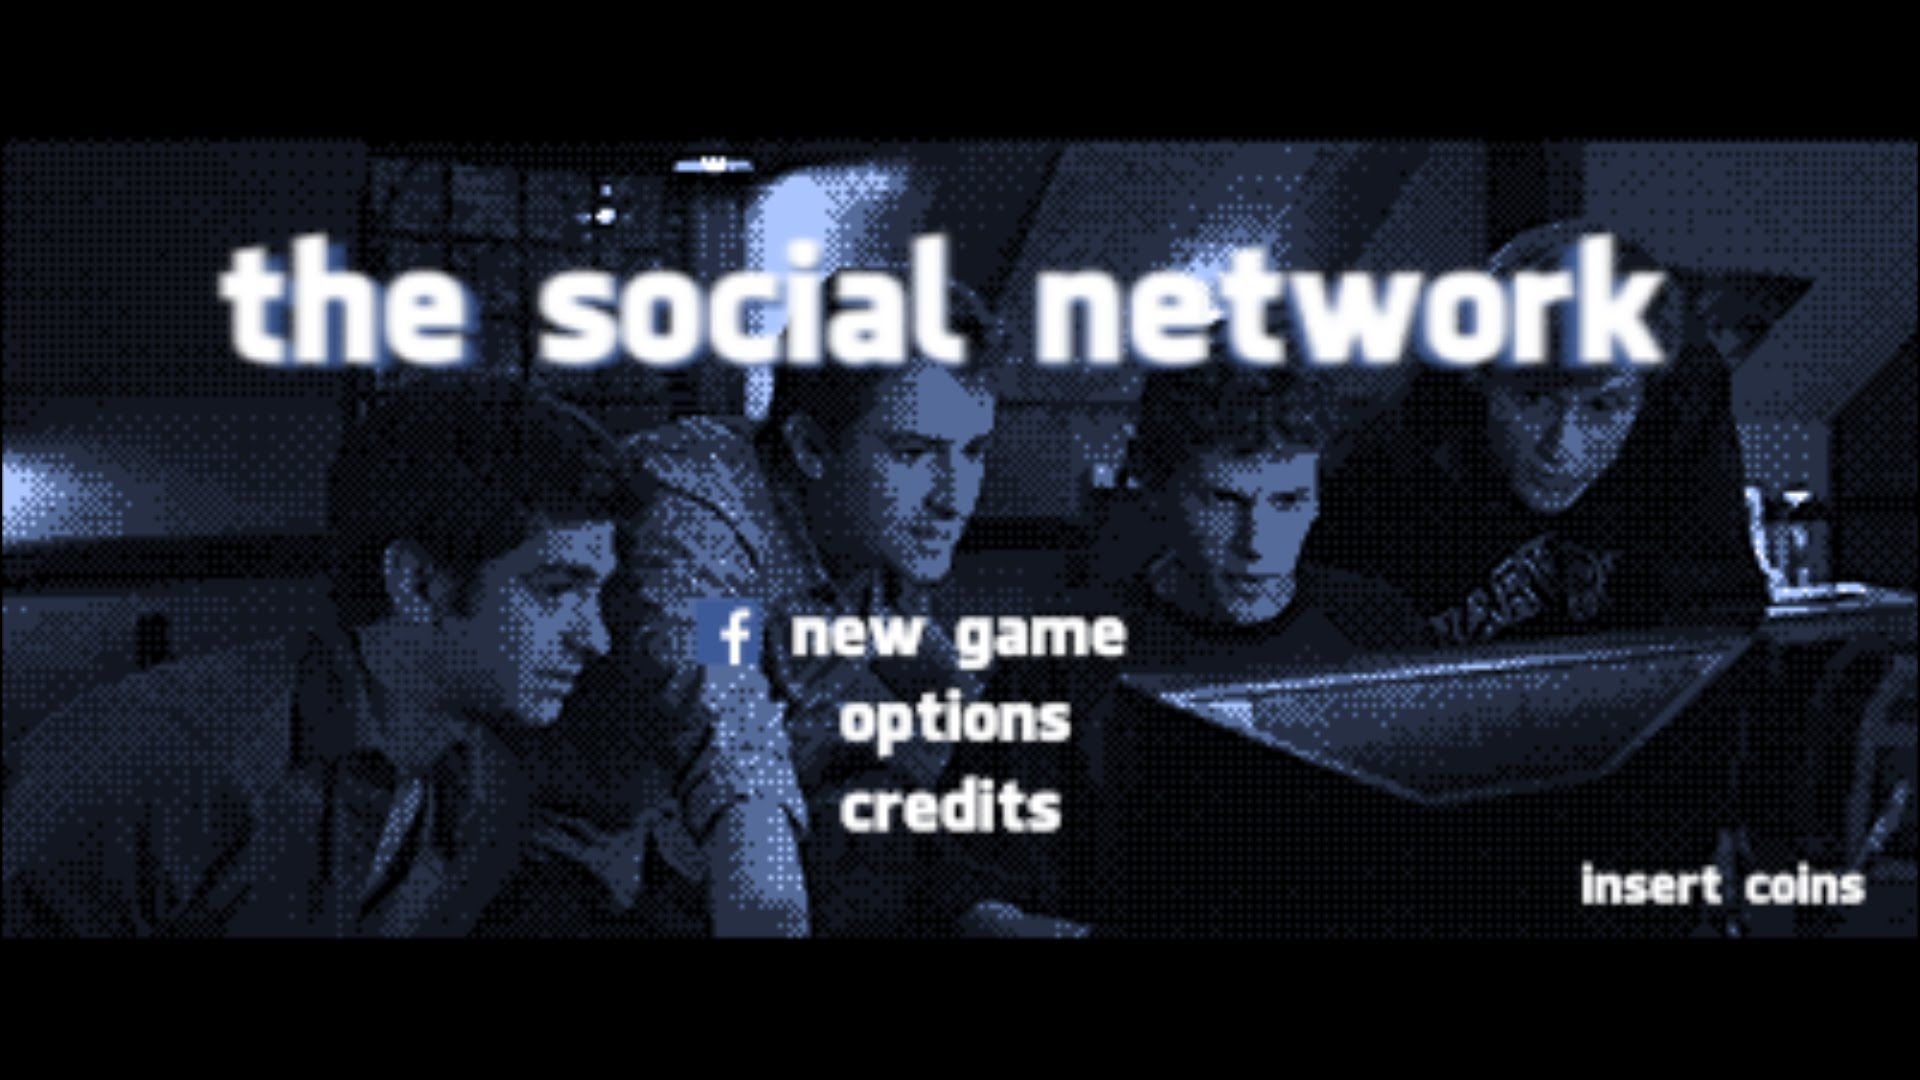 The Social Network Wallpapers - Wallpaper Cave